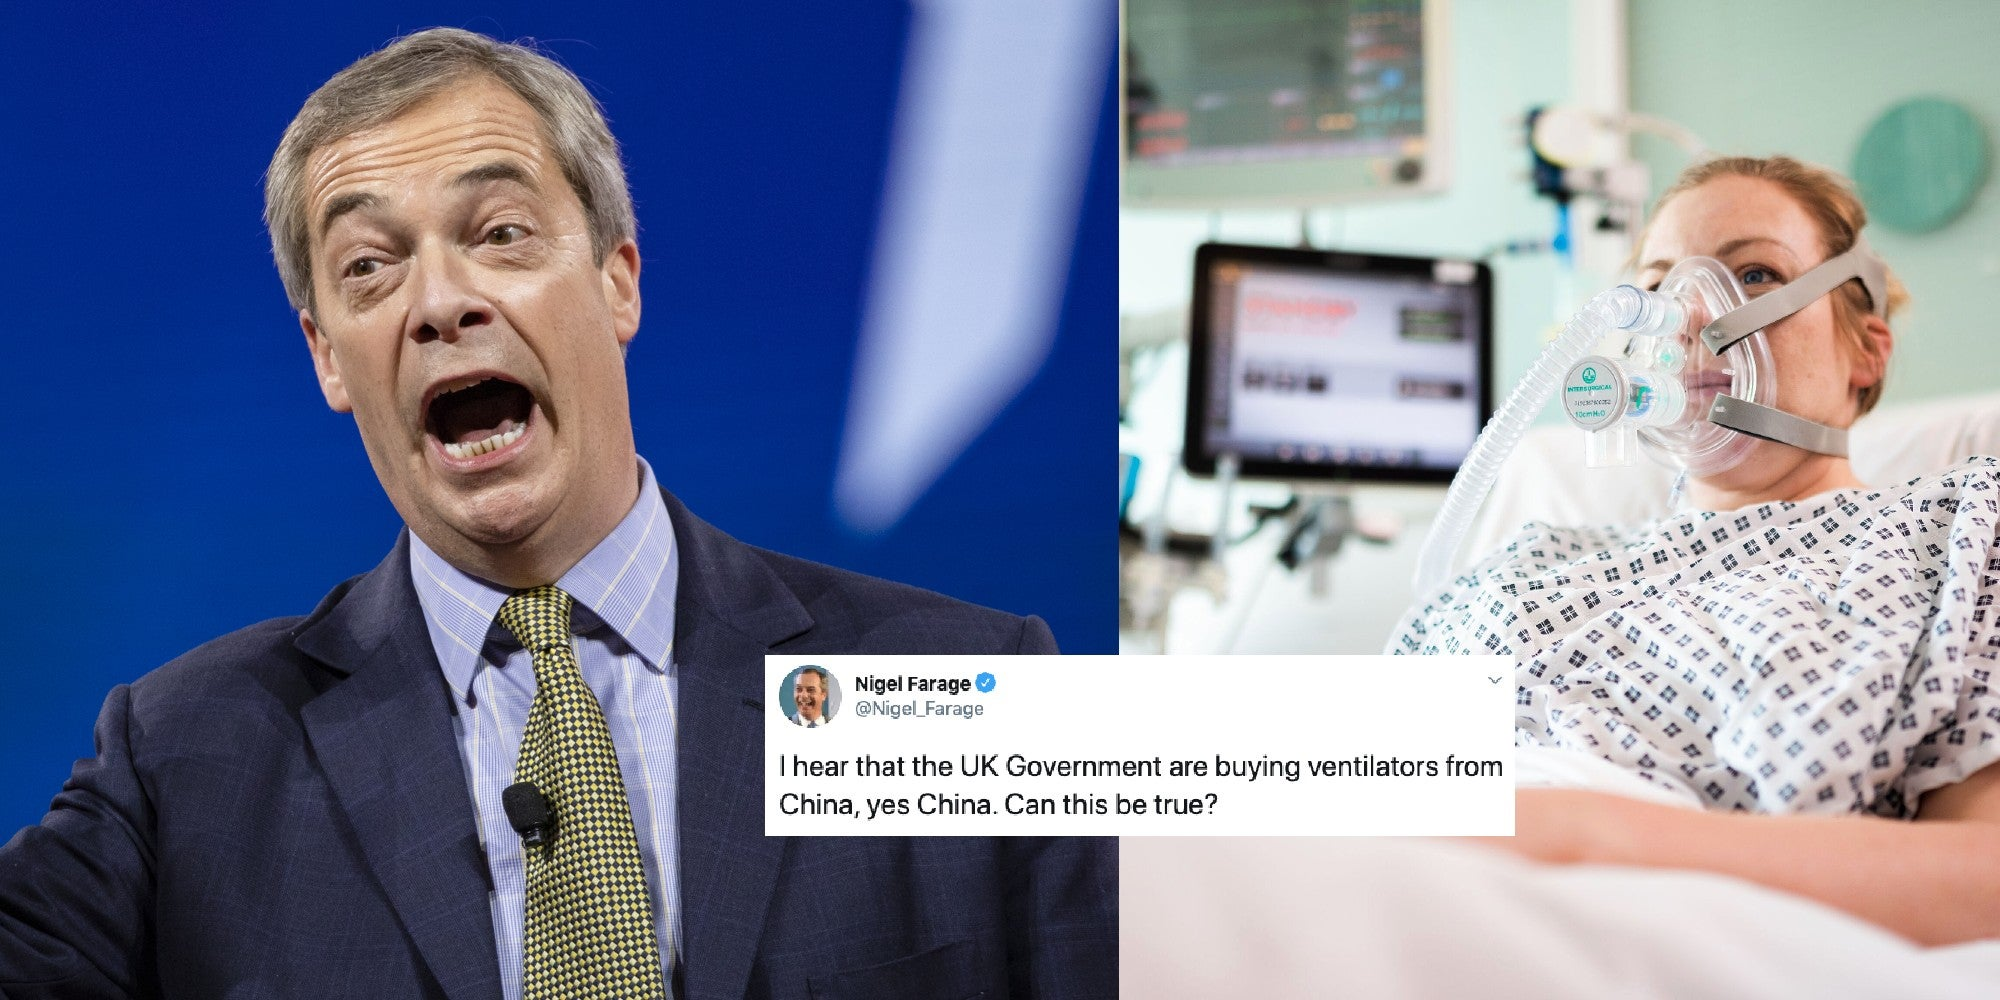 Nigel Farage is not happy the UK is buying life-saving ventilators, because they're from China